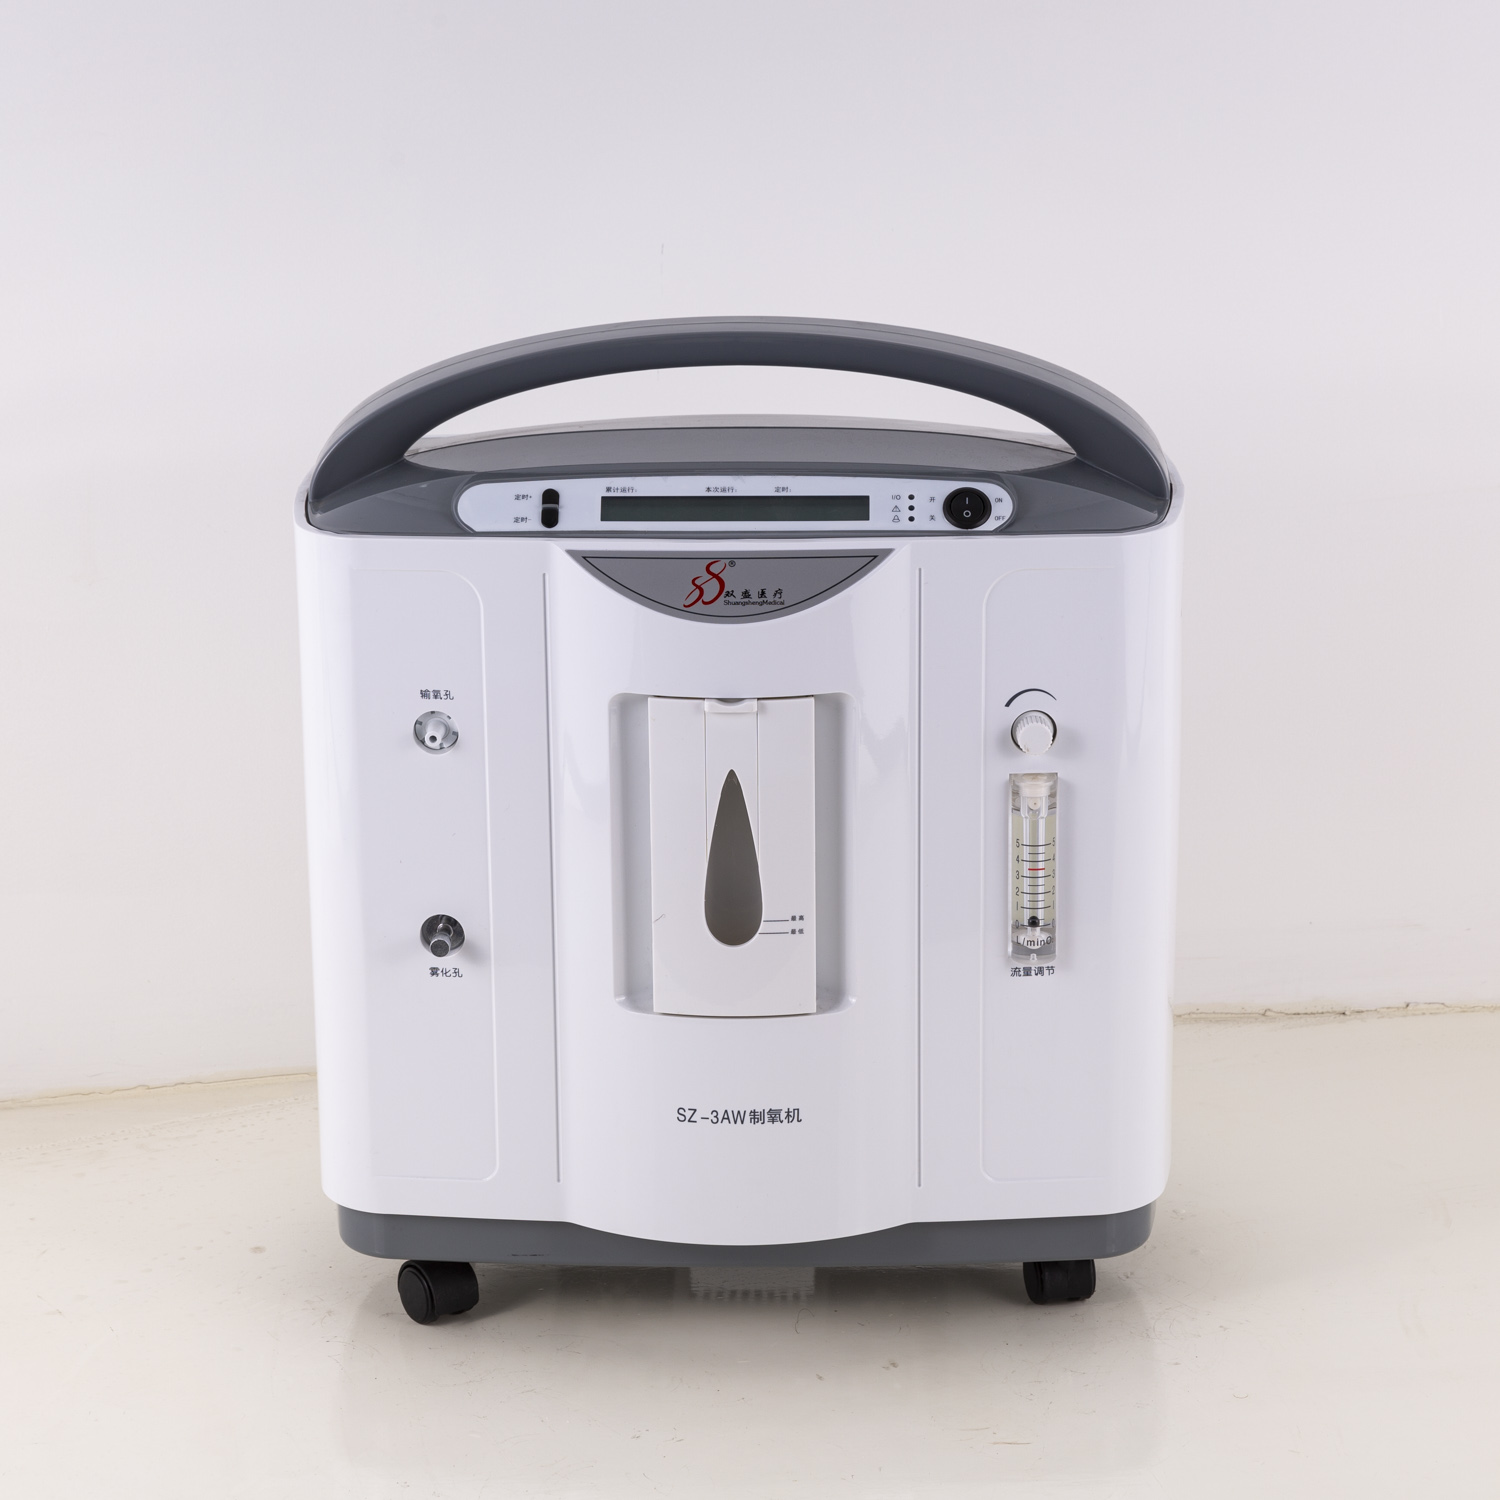 Homecare Oxygen Concentrator